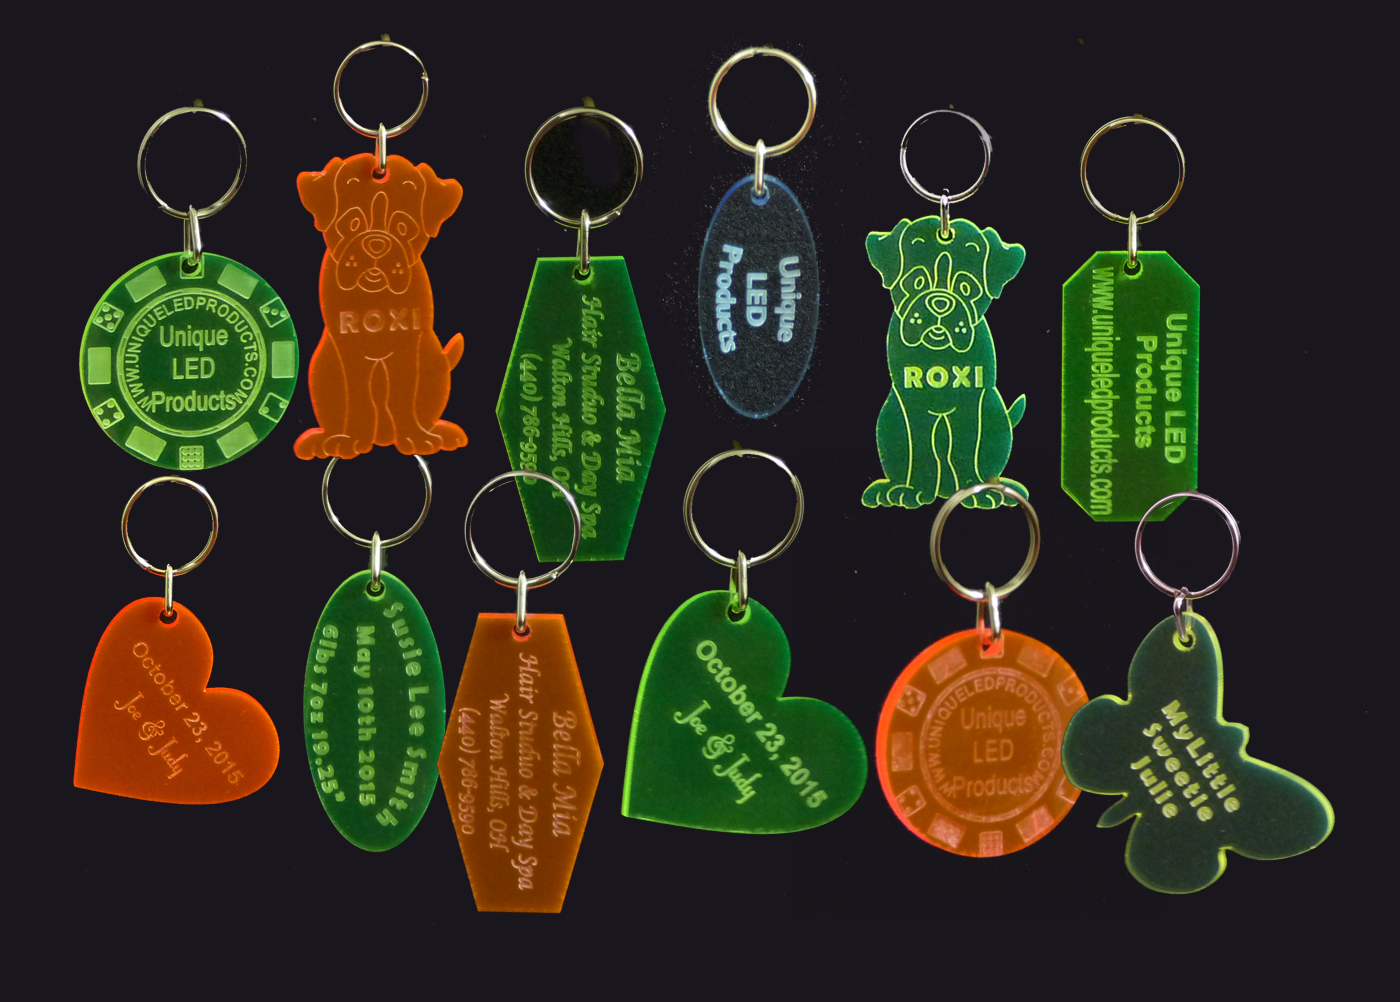 Qty 2 -  Engraved Acrylic Key Chains